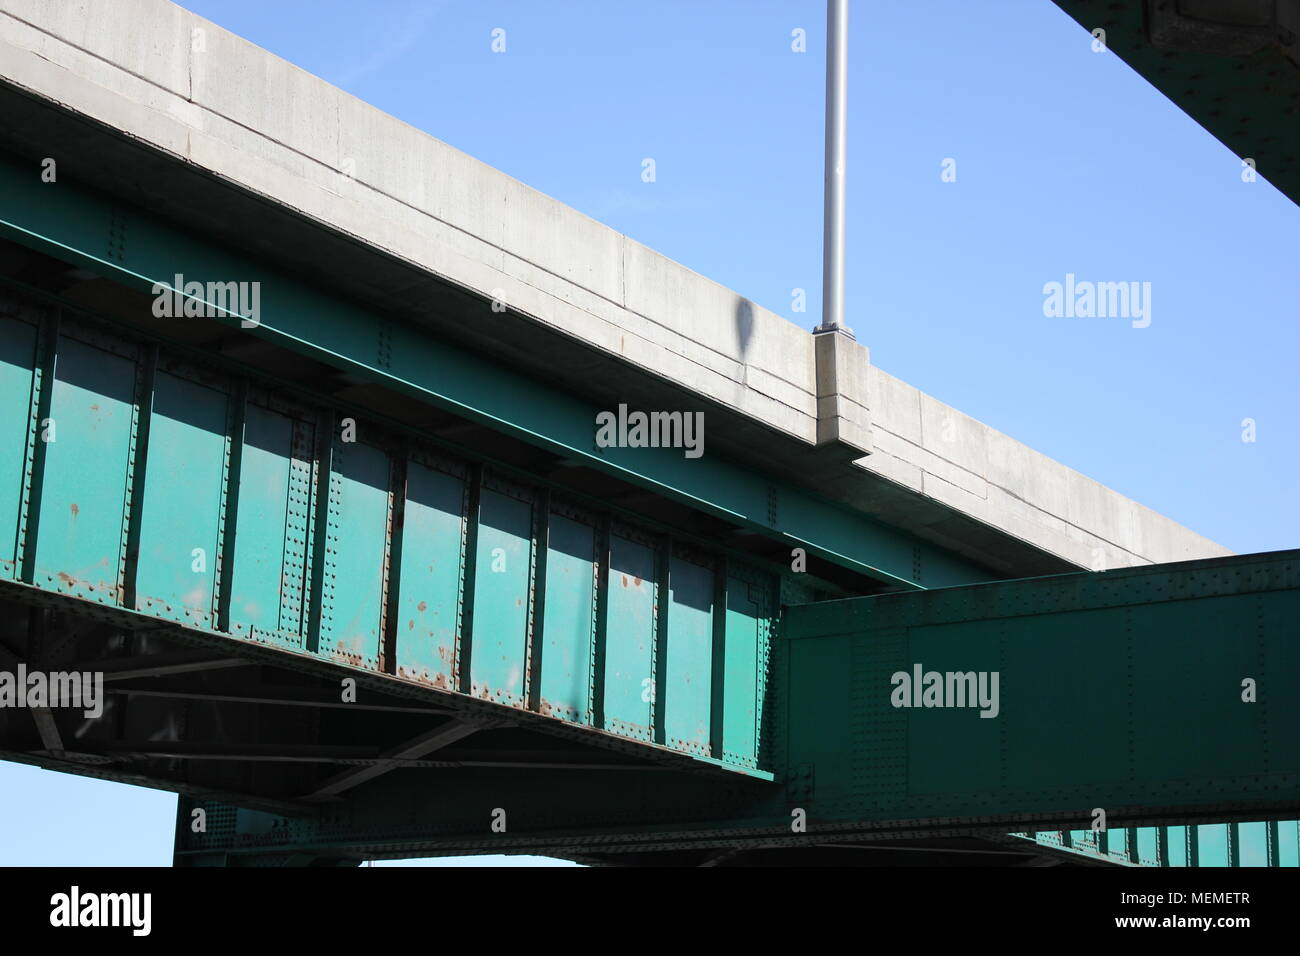 Interstate highway in Illinois cross cross with bridges and overpasses. - Stock Image